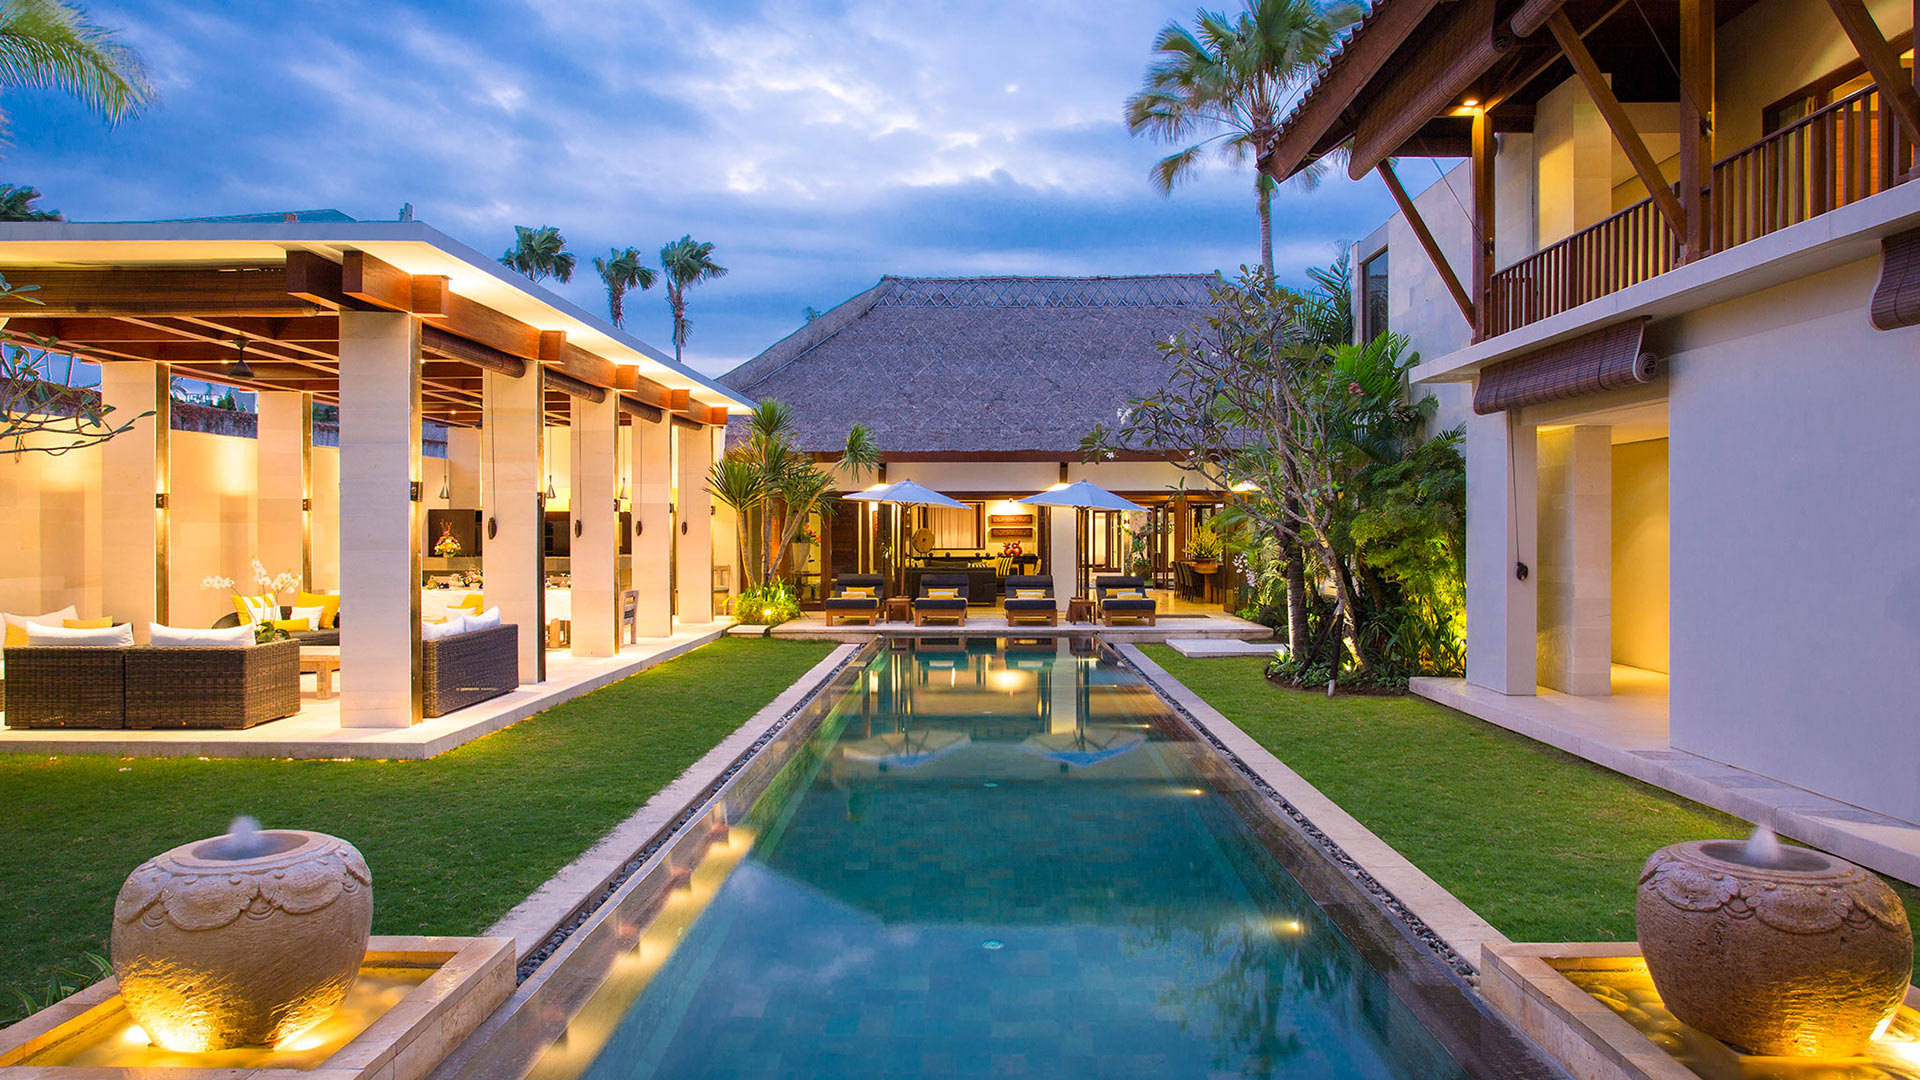 Villa Villa Lilibel, Rental in Bali